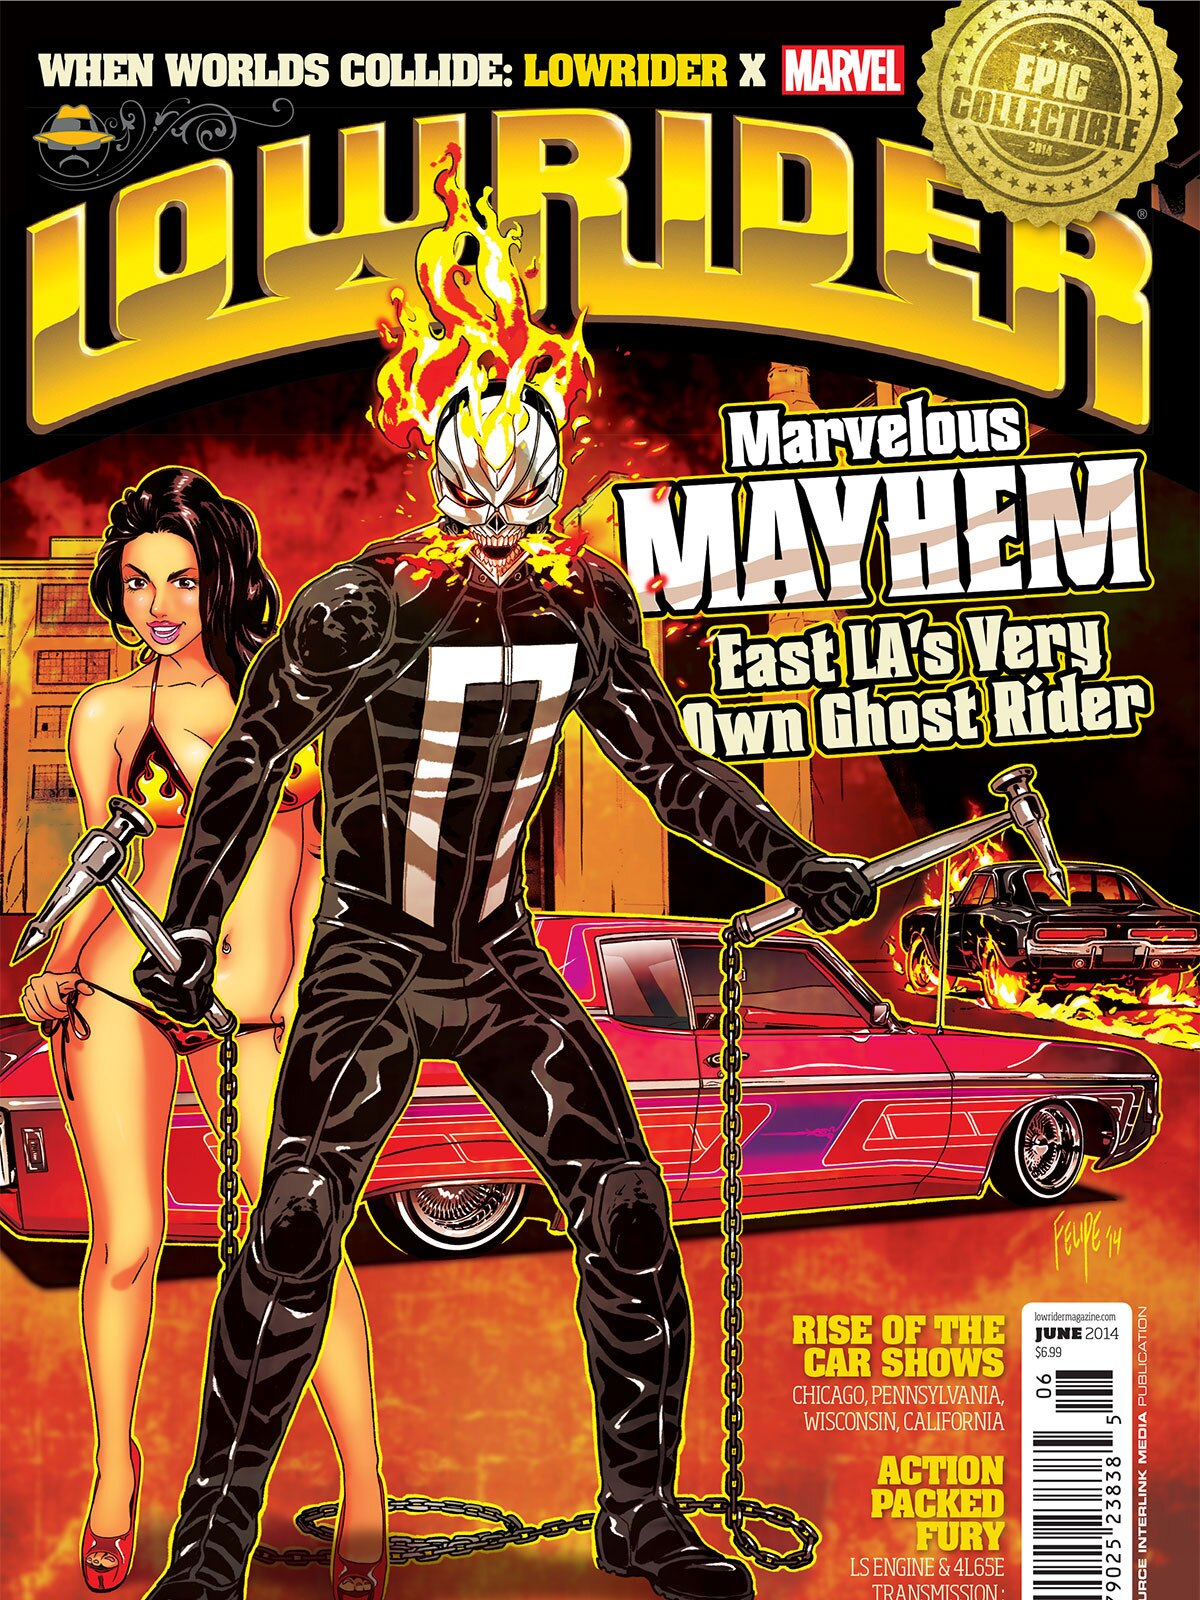 Ghost rider sex game sexy comics